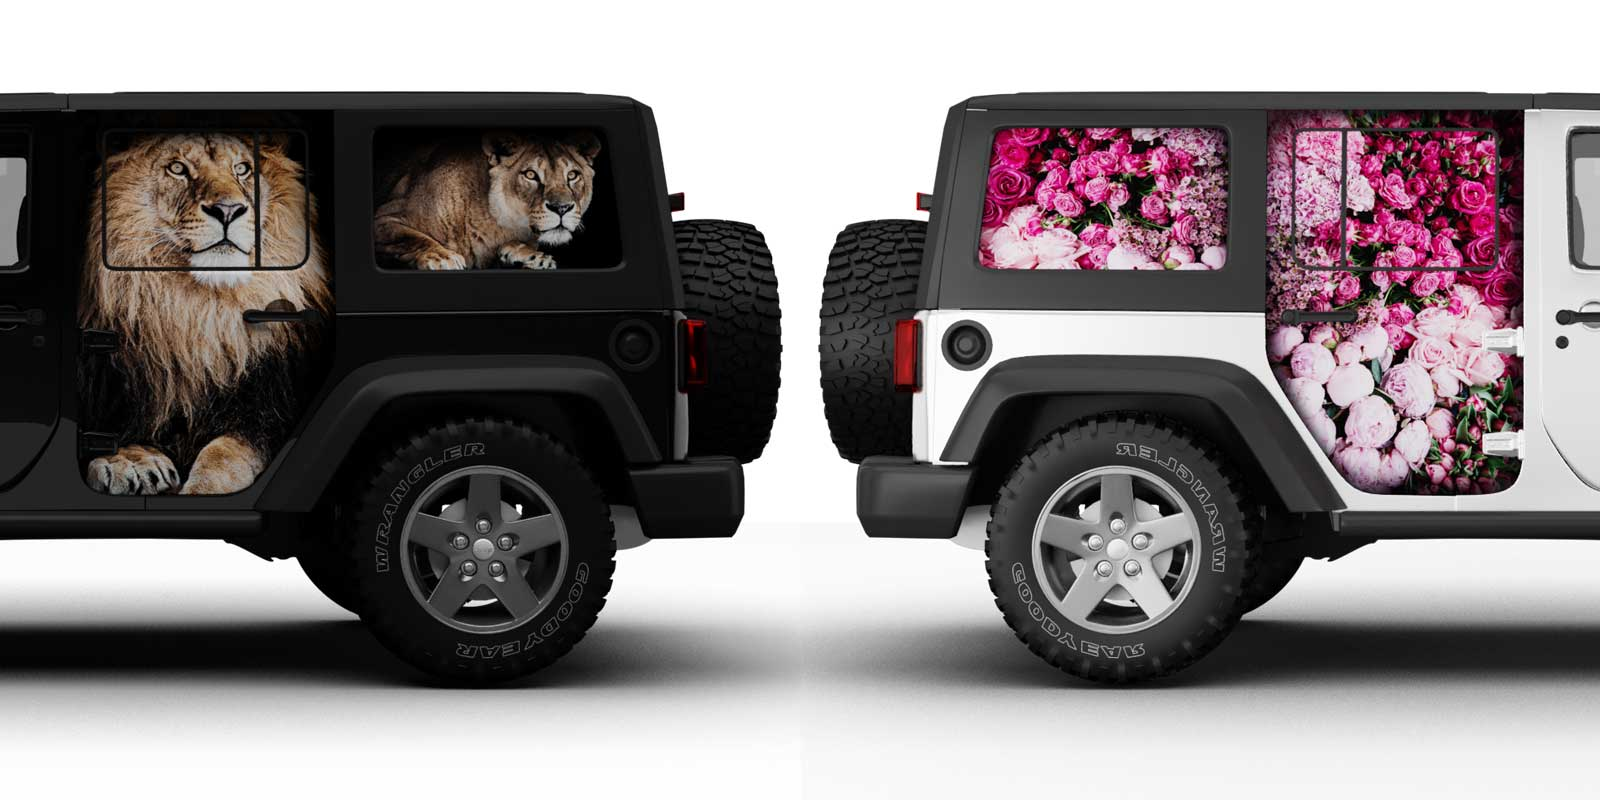 カーラッピング コンセプトデザイン Jeep Wrangler Unlimited Wrapped(Zoo Lion & Florist Rose)